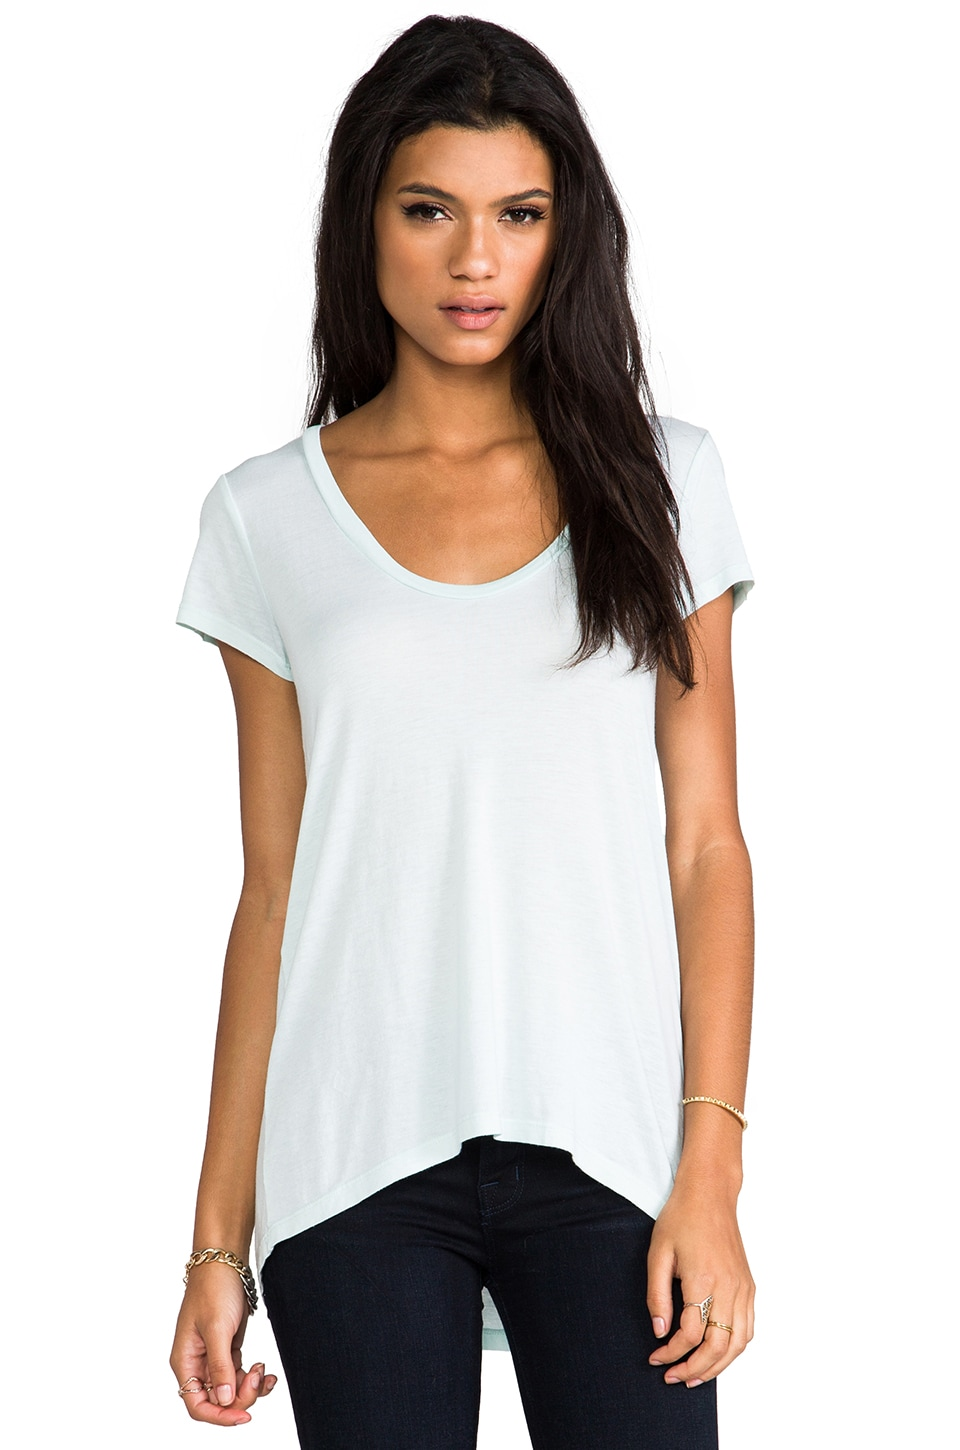 Splendid Light Jersey Short Sleeve Tee in Spearmint